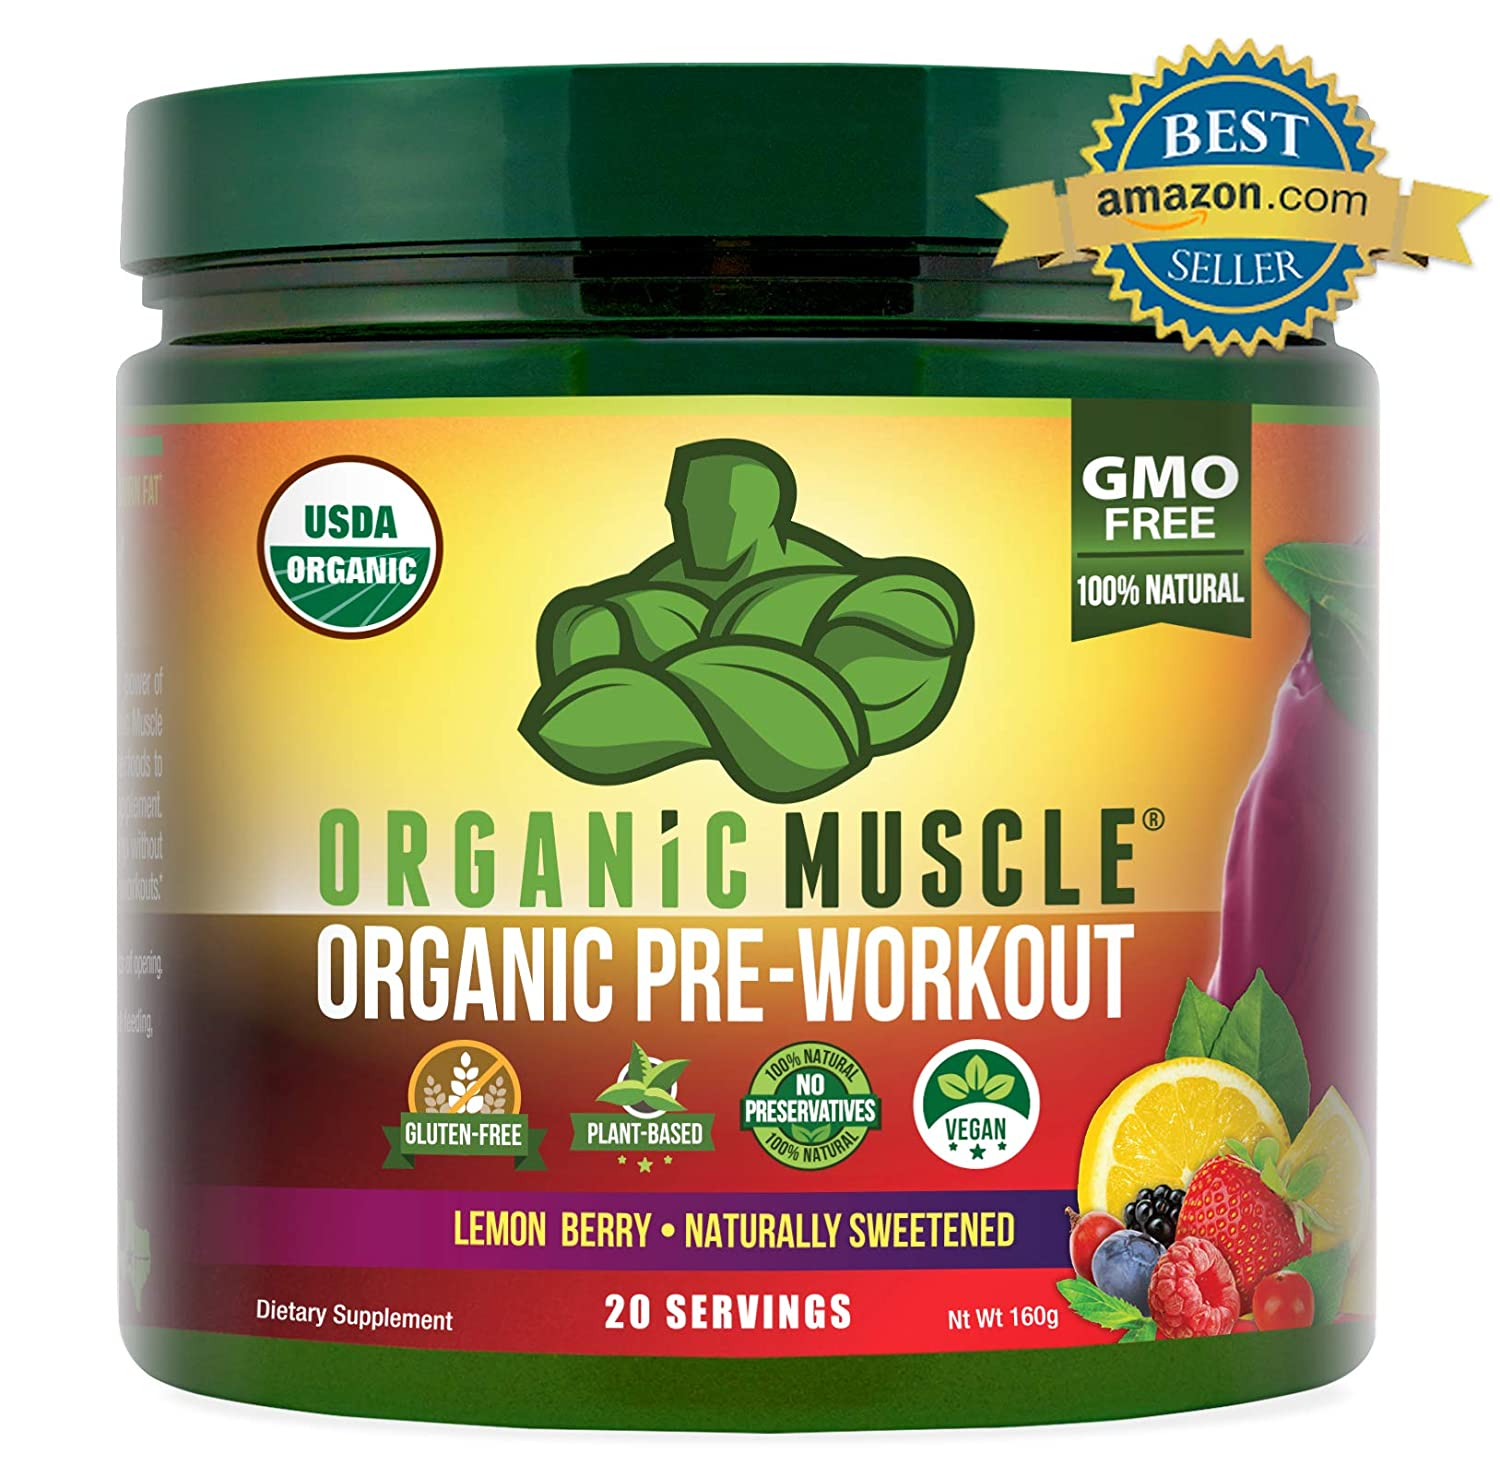 Organic Muscle Pre-Workout review